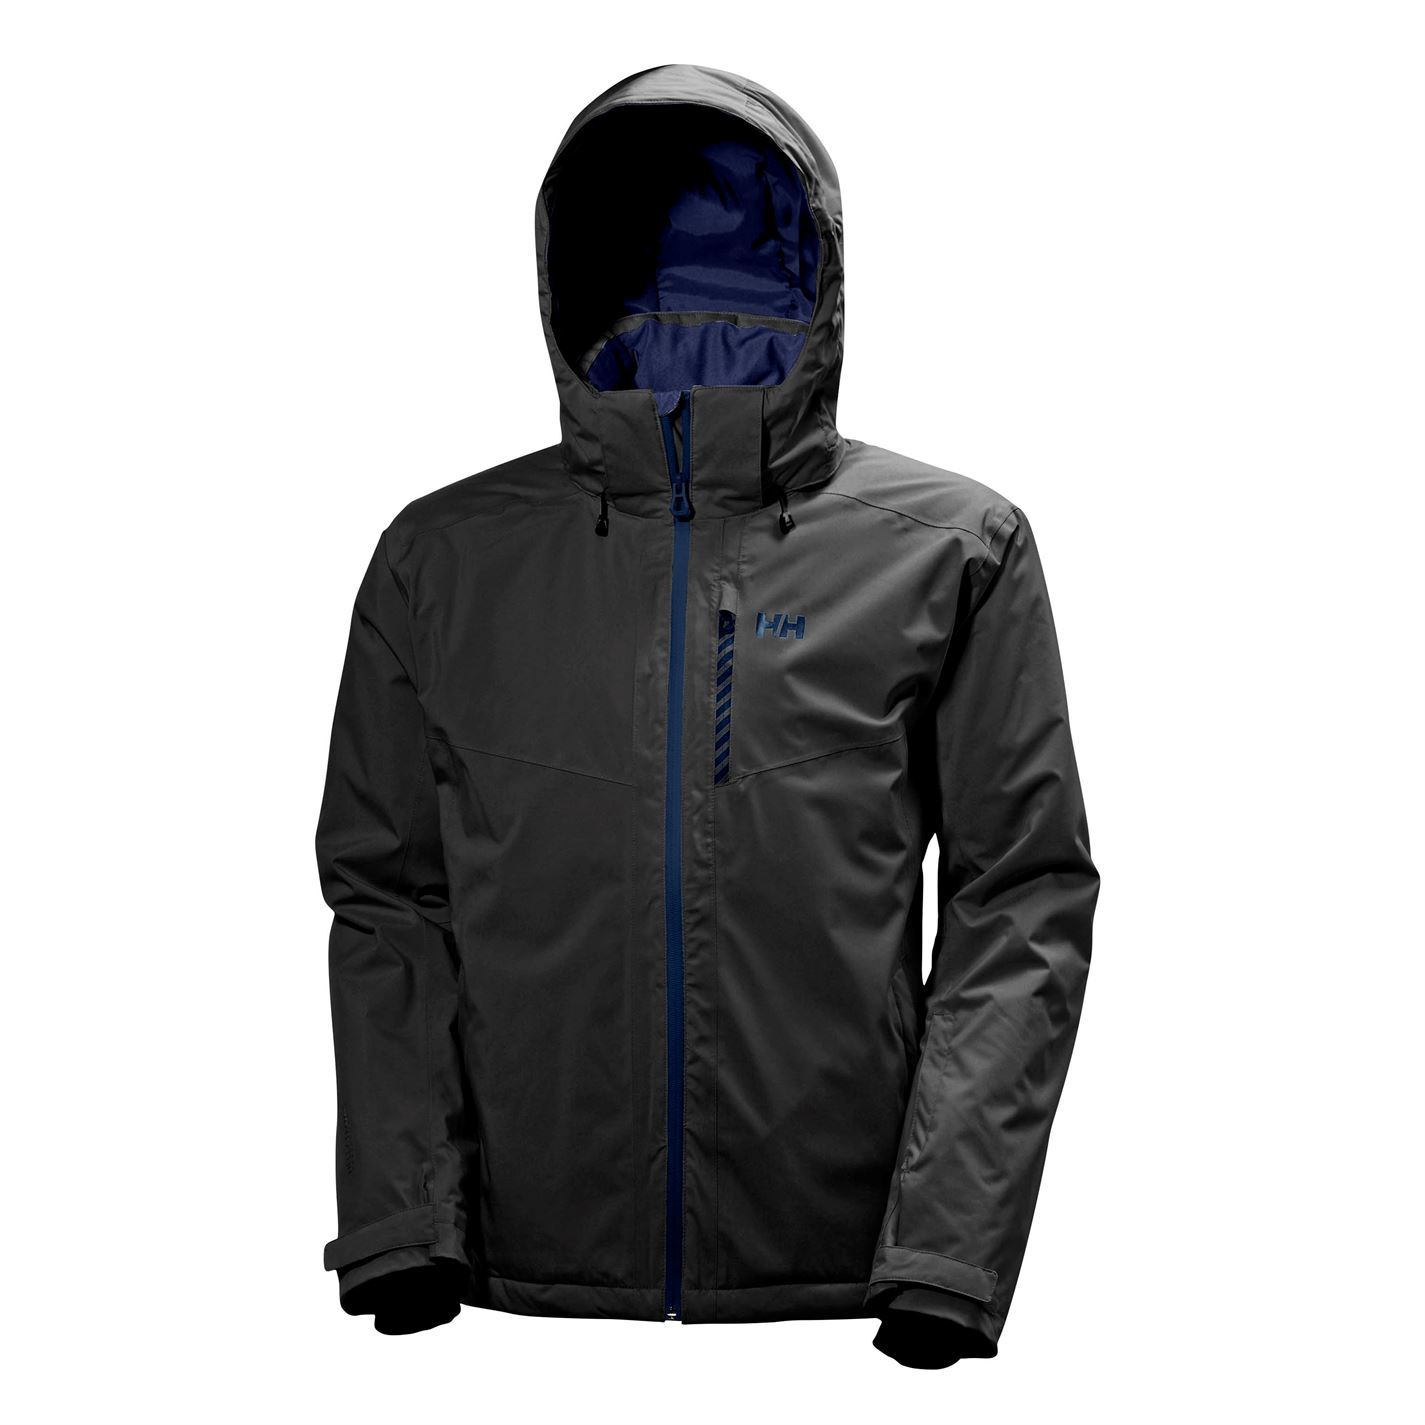 helly hansen mens swift jacket ski snow winter sports full zip hooded top ebay. Black Bedroom Furniture Sets. Home Design Ideas